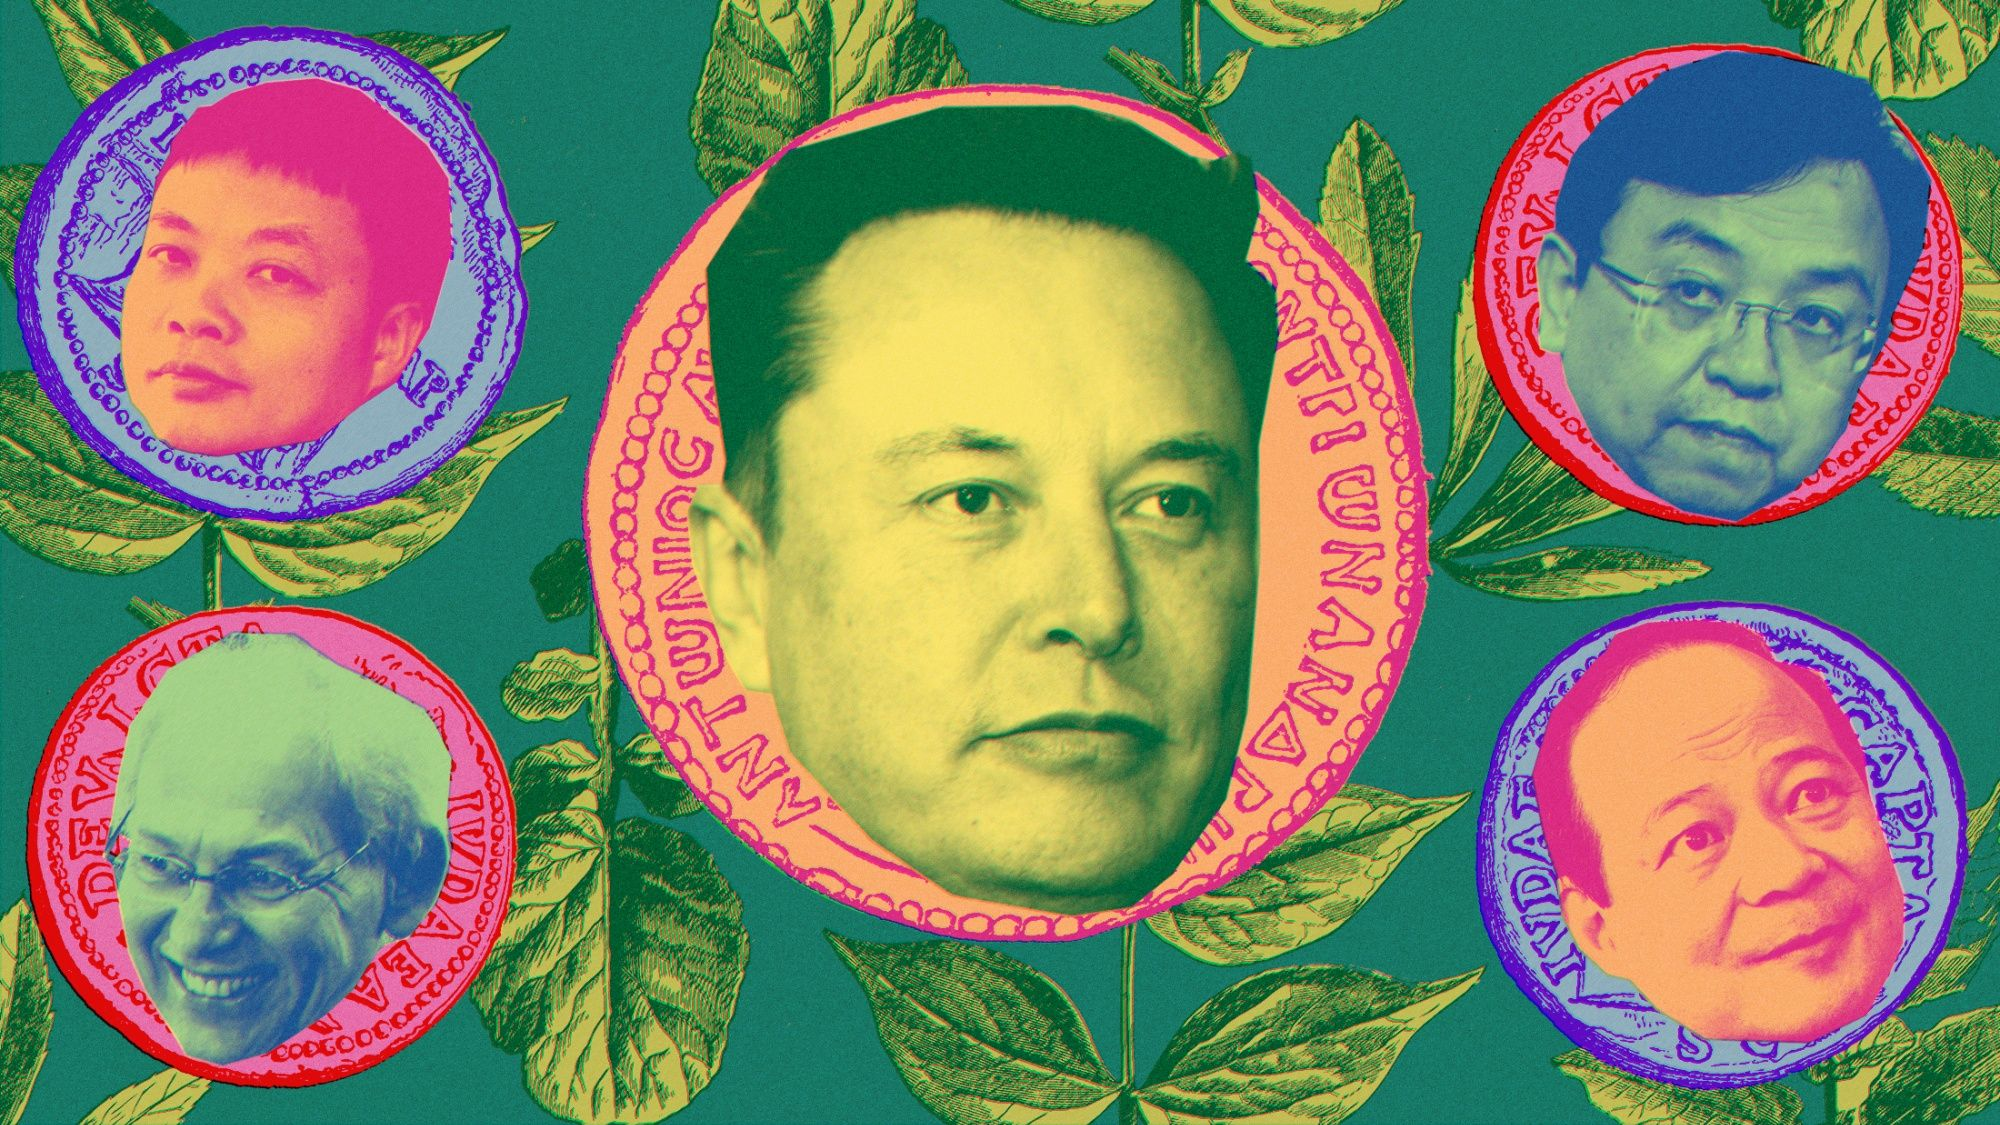 The Climate Billionaires: Elon Musk on Top, the Rest Are Made in China